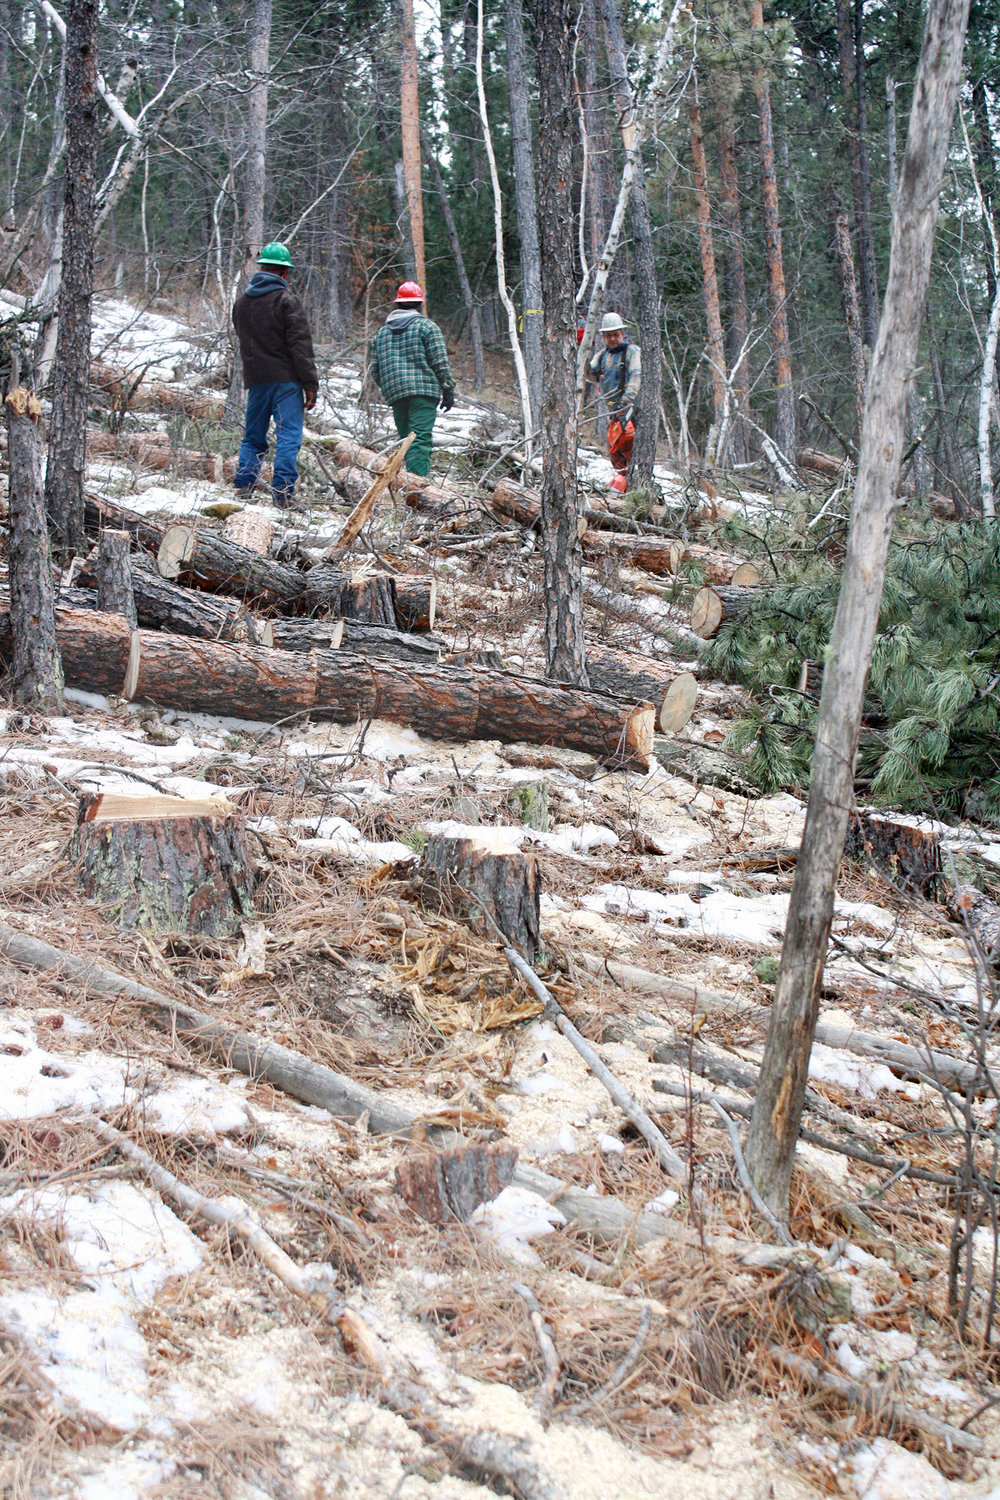 Workers walk through an infested area, looking at the trees being cut. Photo provided by Dave Heck.